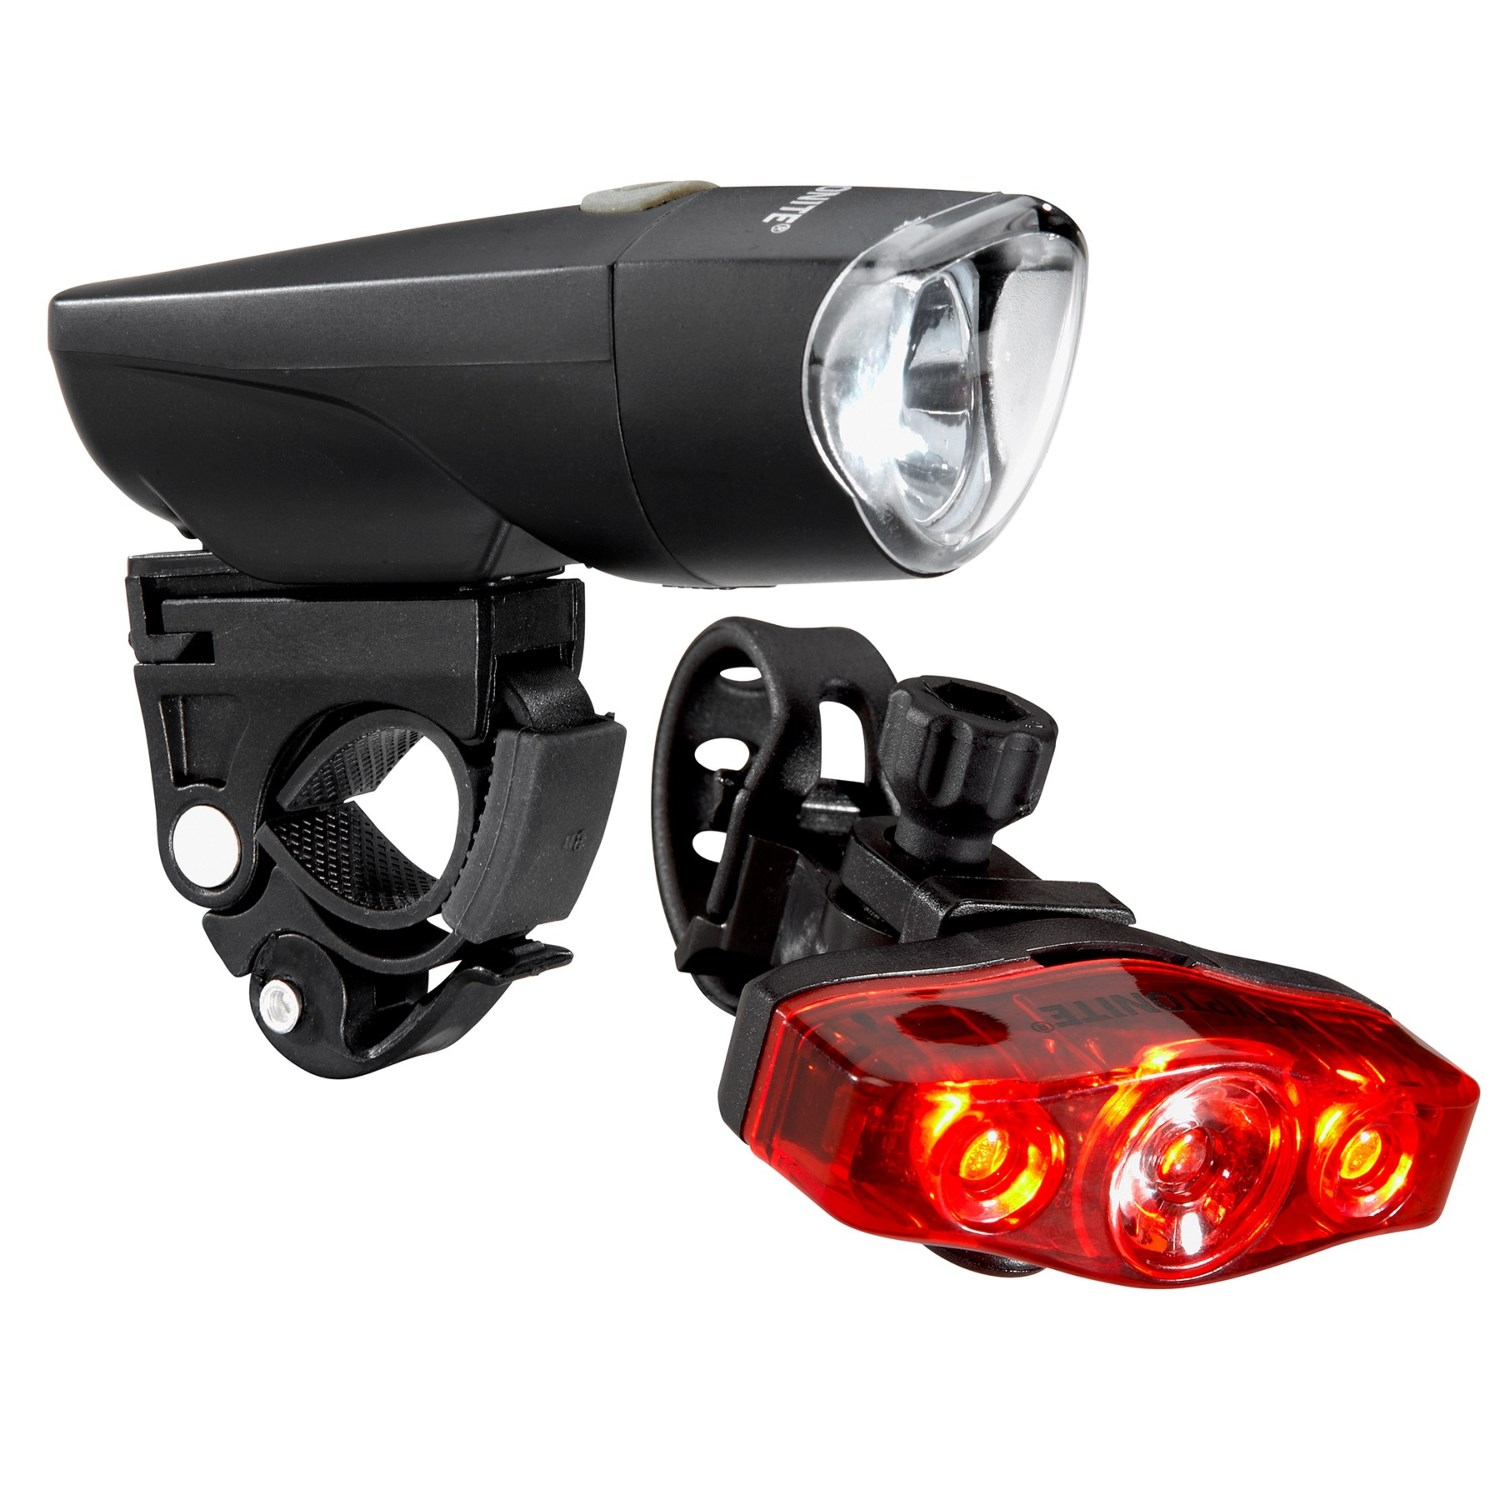 lighting stuff sale light bike intensity lights cool twenty under high uvzzgl led product red